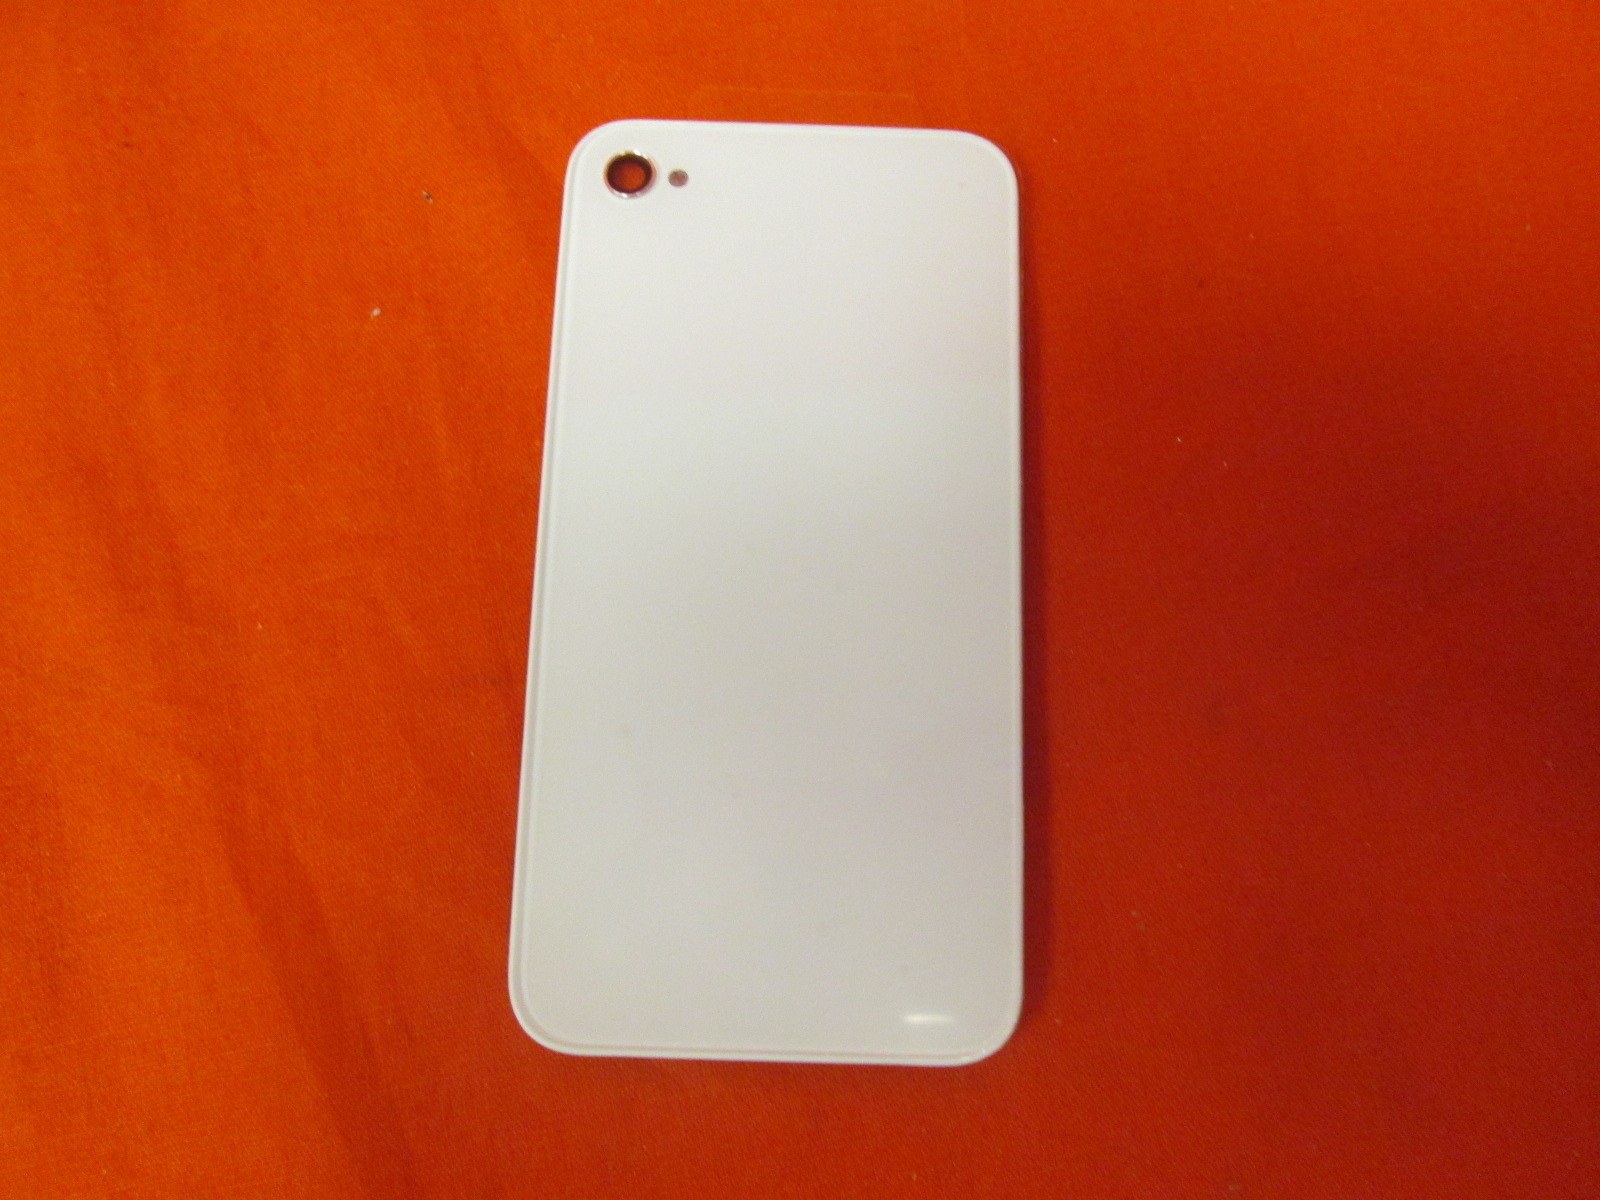 Replacement Back Housing Cover Battery Door Cover For iPhone 4 4S